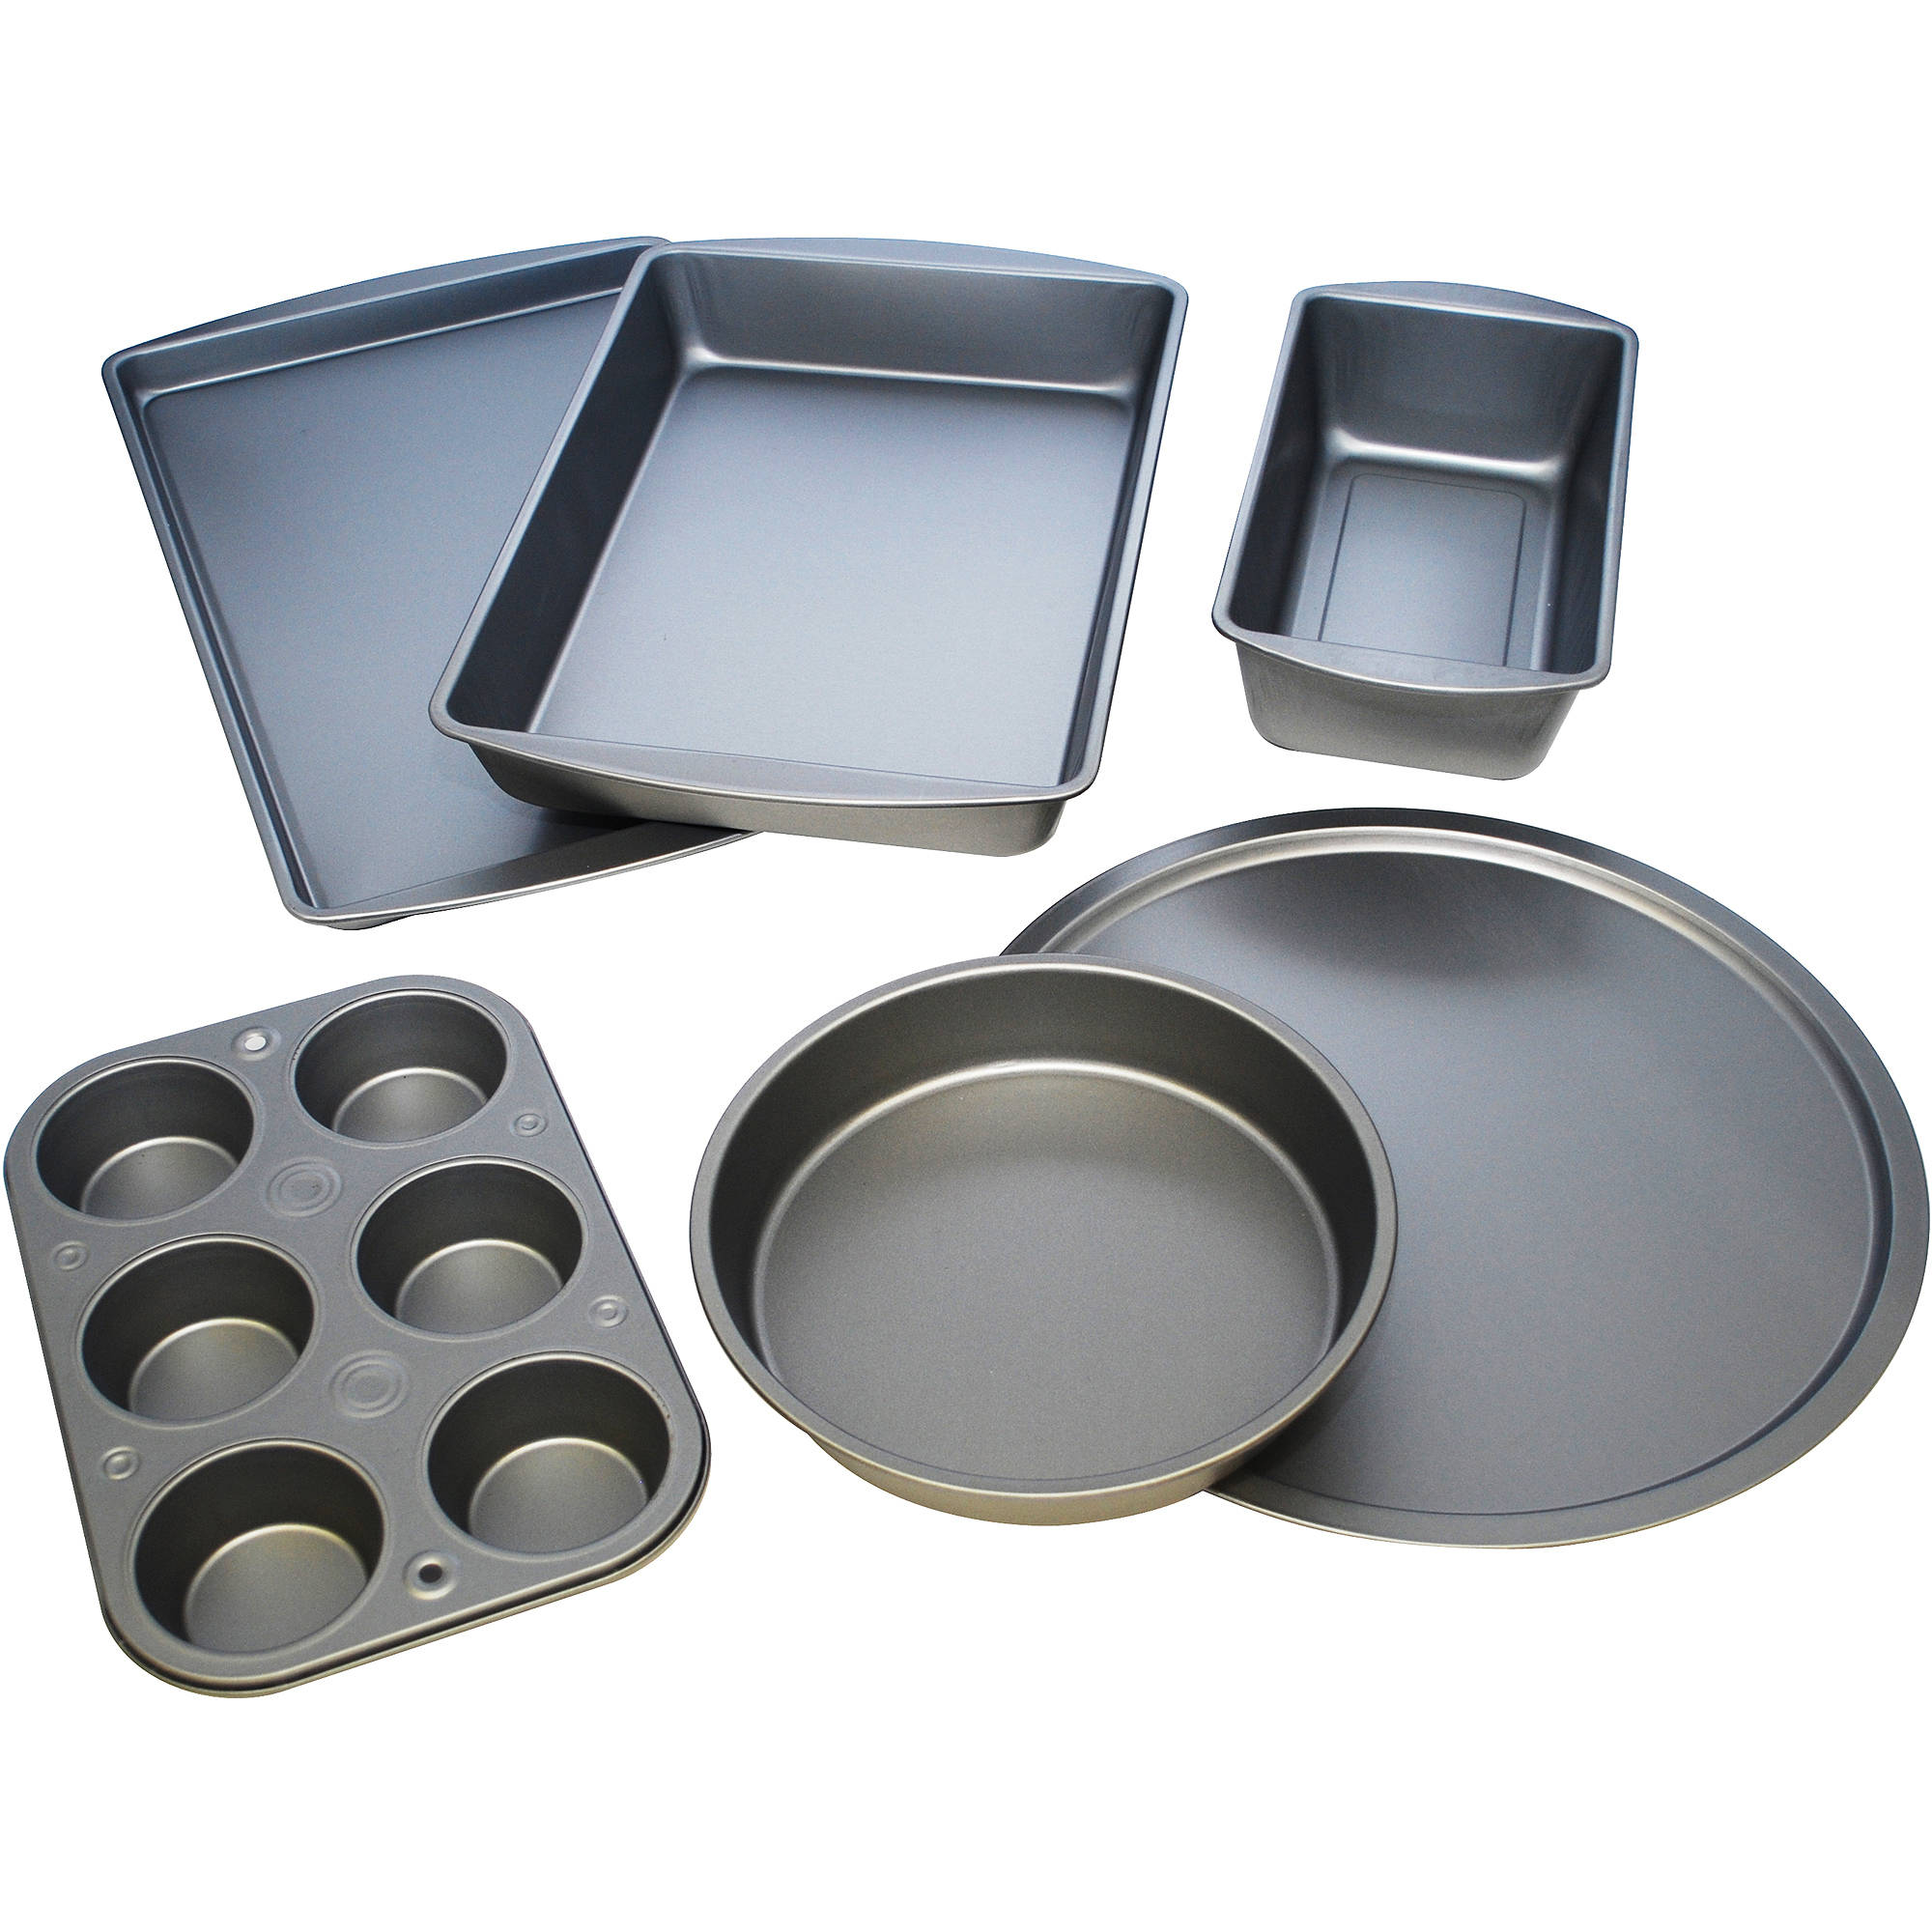 G & S Metal Products Co., Inc. Generic Baker Eze 6 - piece Non - stick Bakeware Set